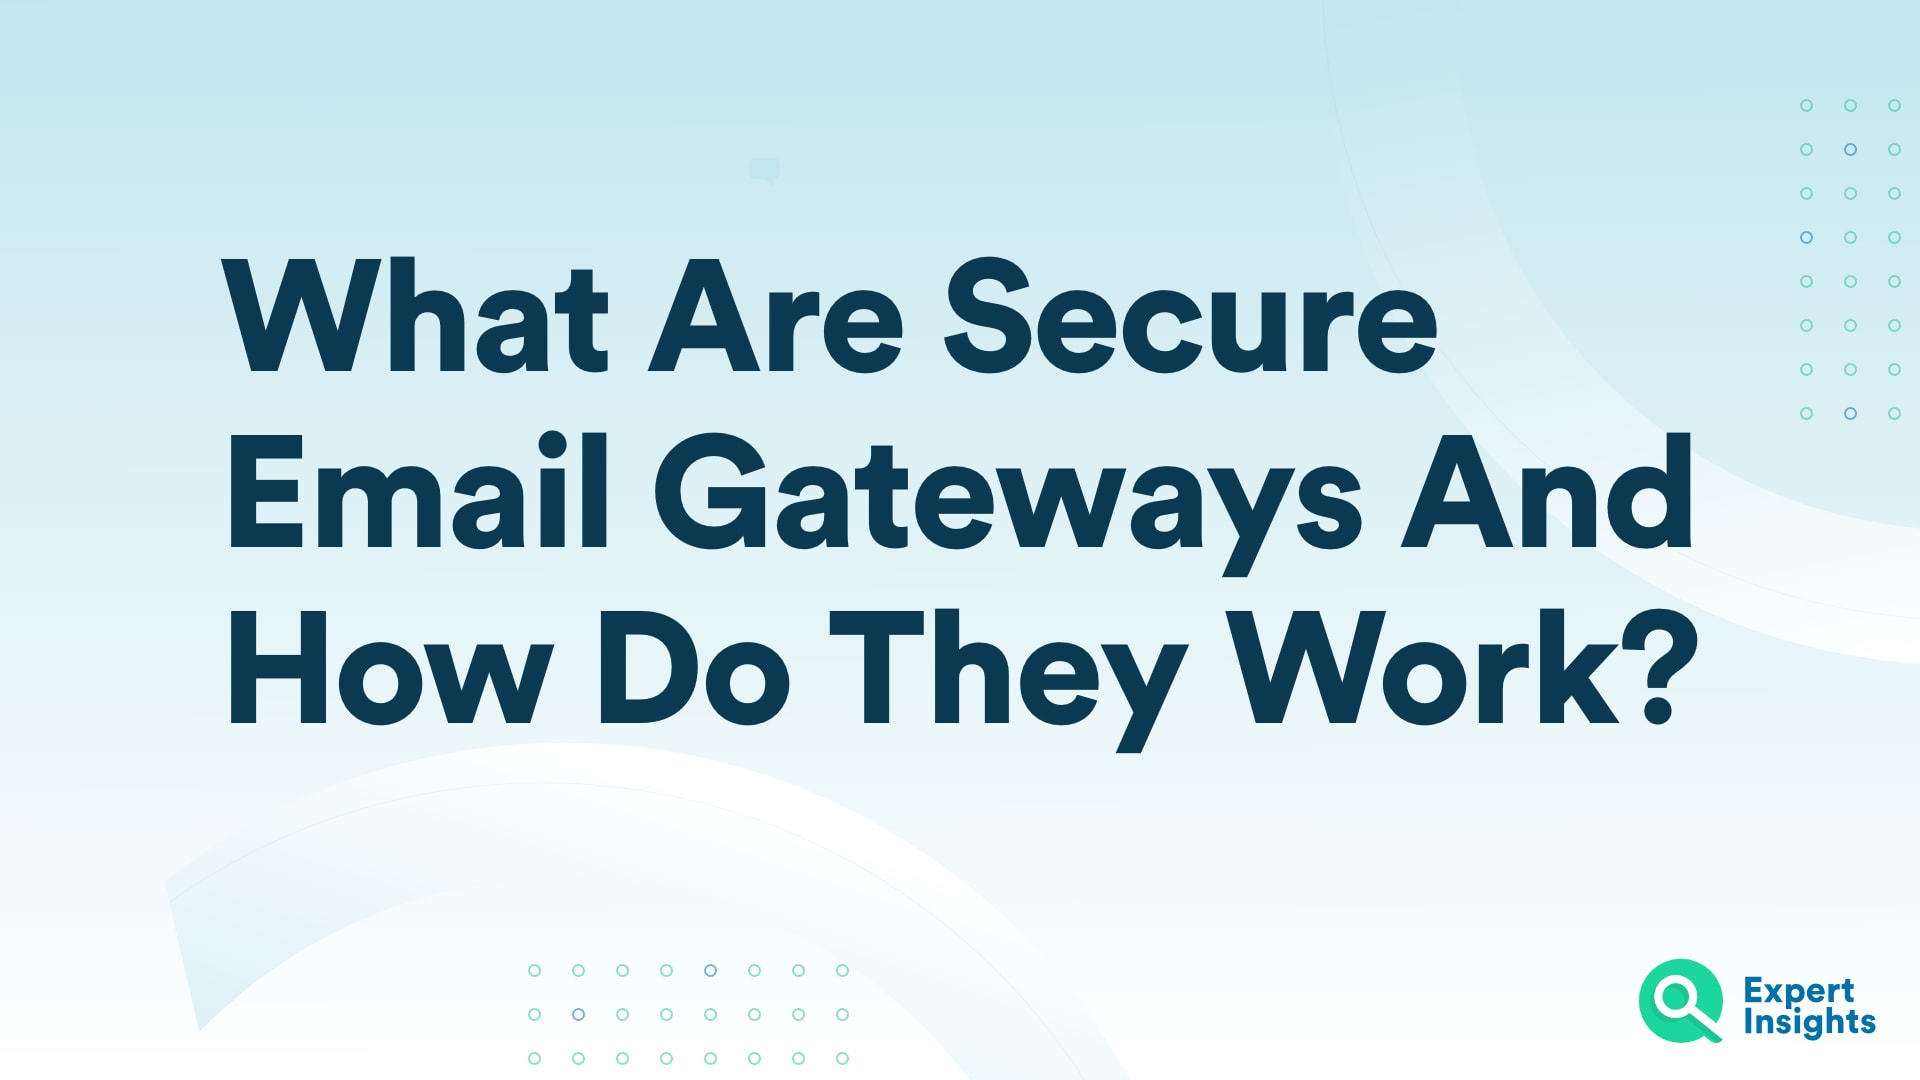 Secure Email Gateways Expert Insights